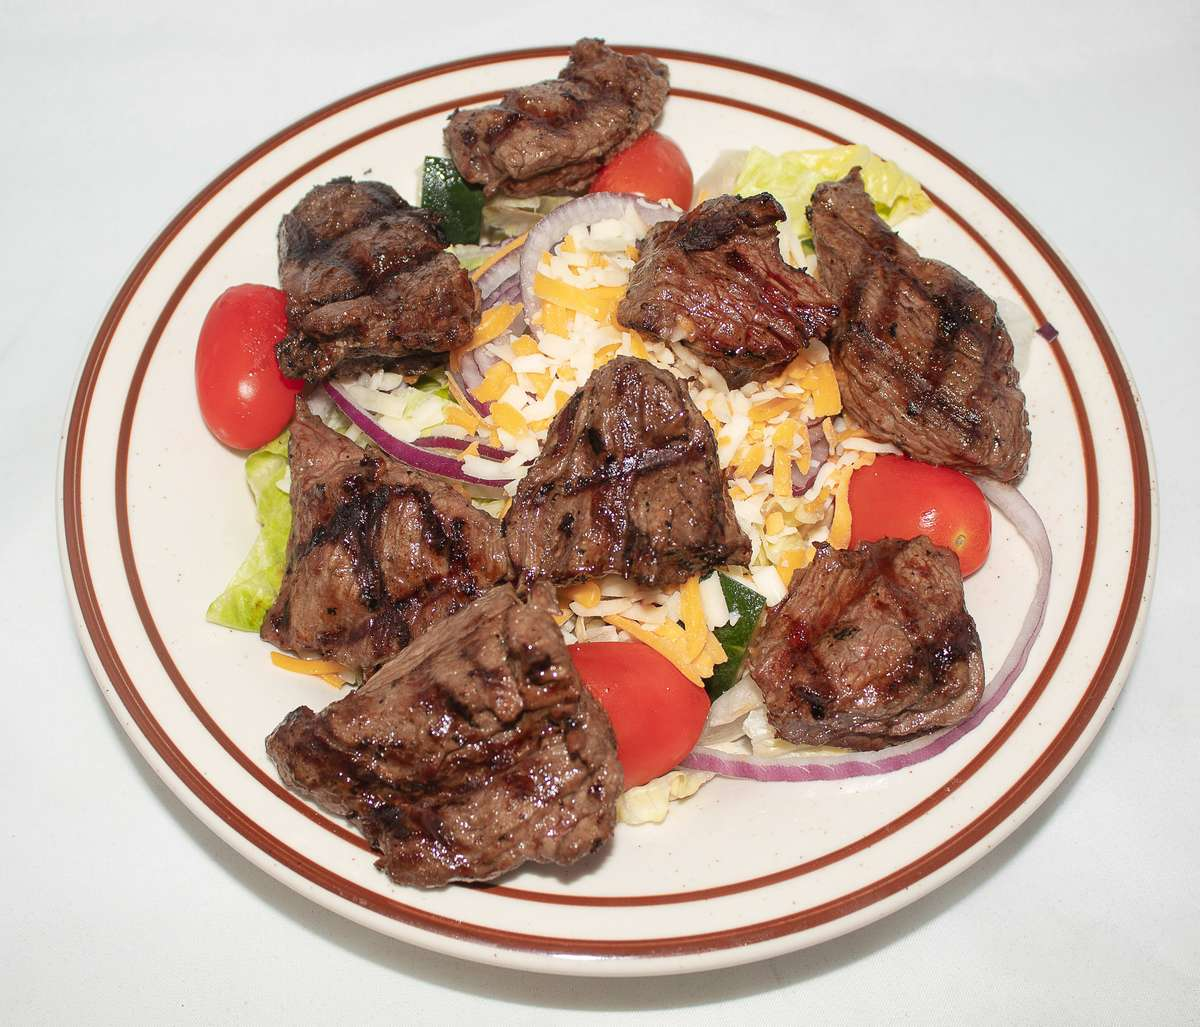 Salad w/Sirloin Tips